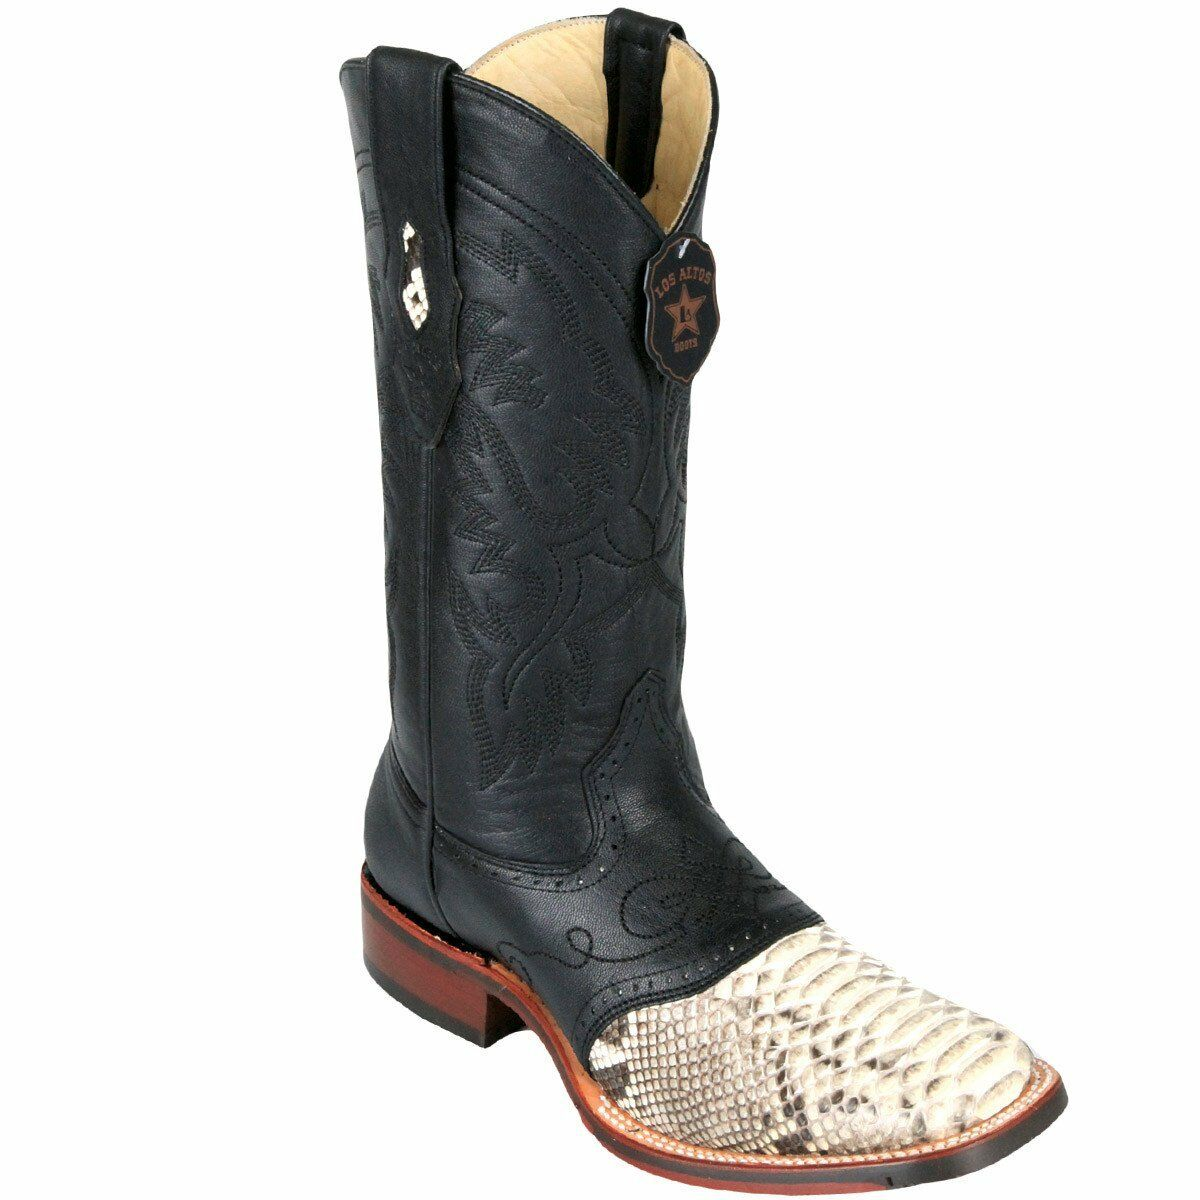 Los Altos NATURAL Rubber Python Square Toe TPU Rubber NATURAL Sole Western Cowboy Boot EE 0139a1